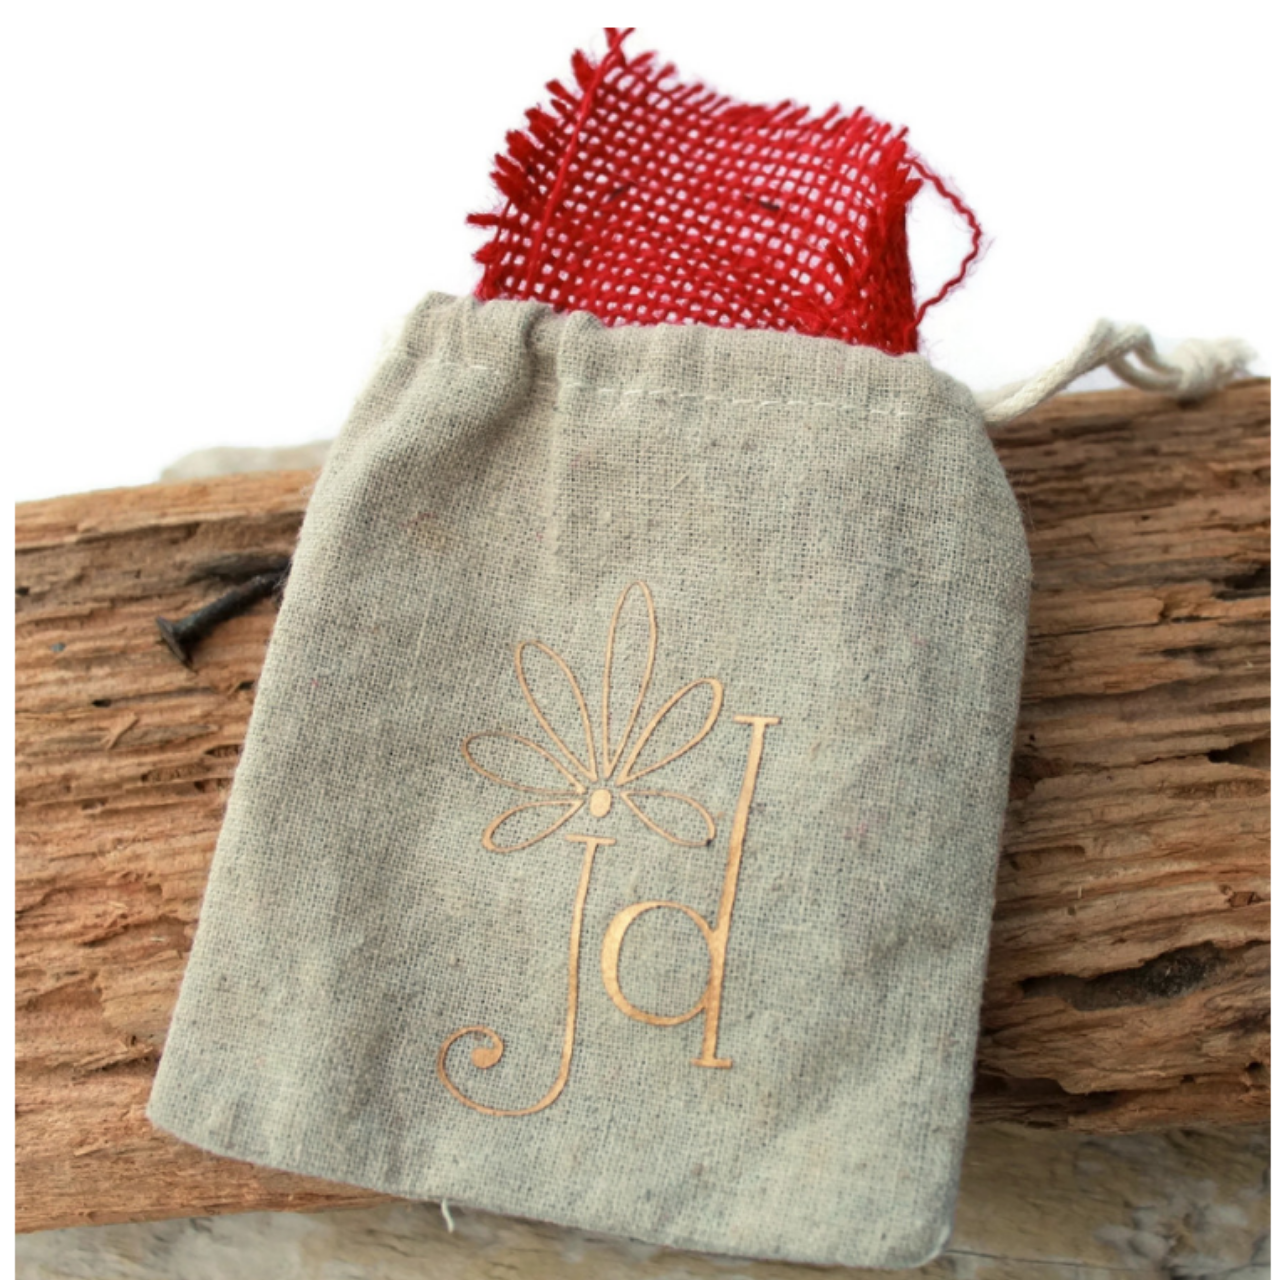 tan-linen-jdavis-collection-jewlry-bag-with-red-burlap-on-wood-background